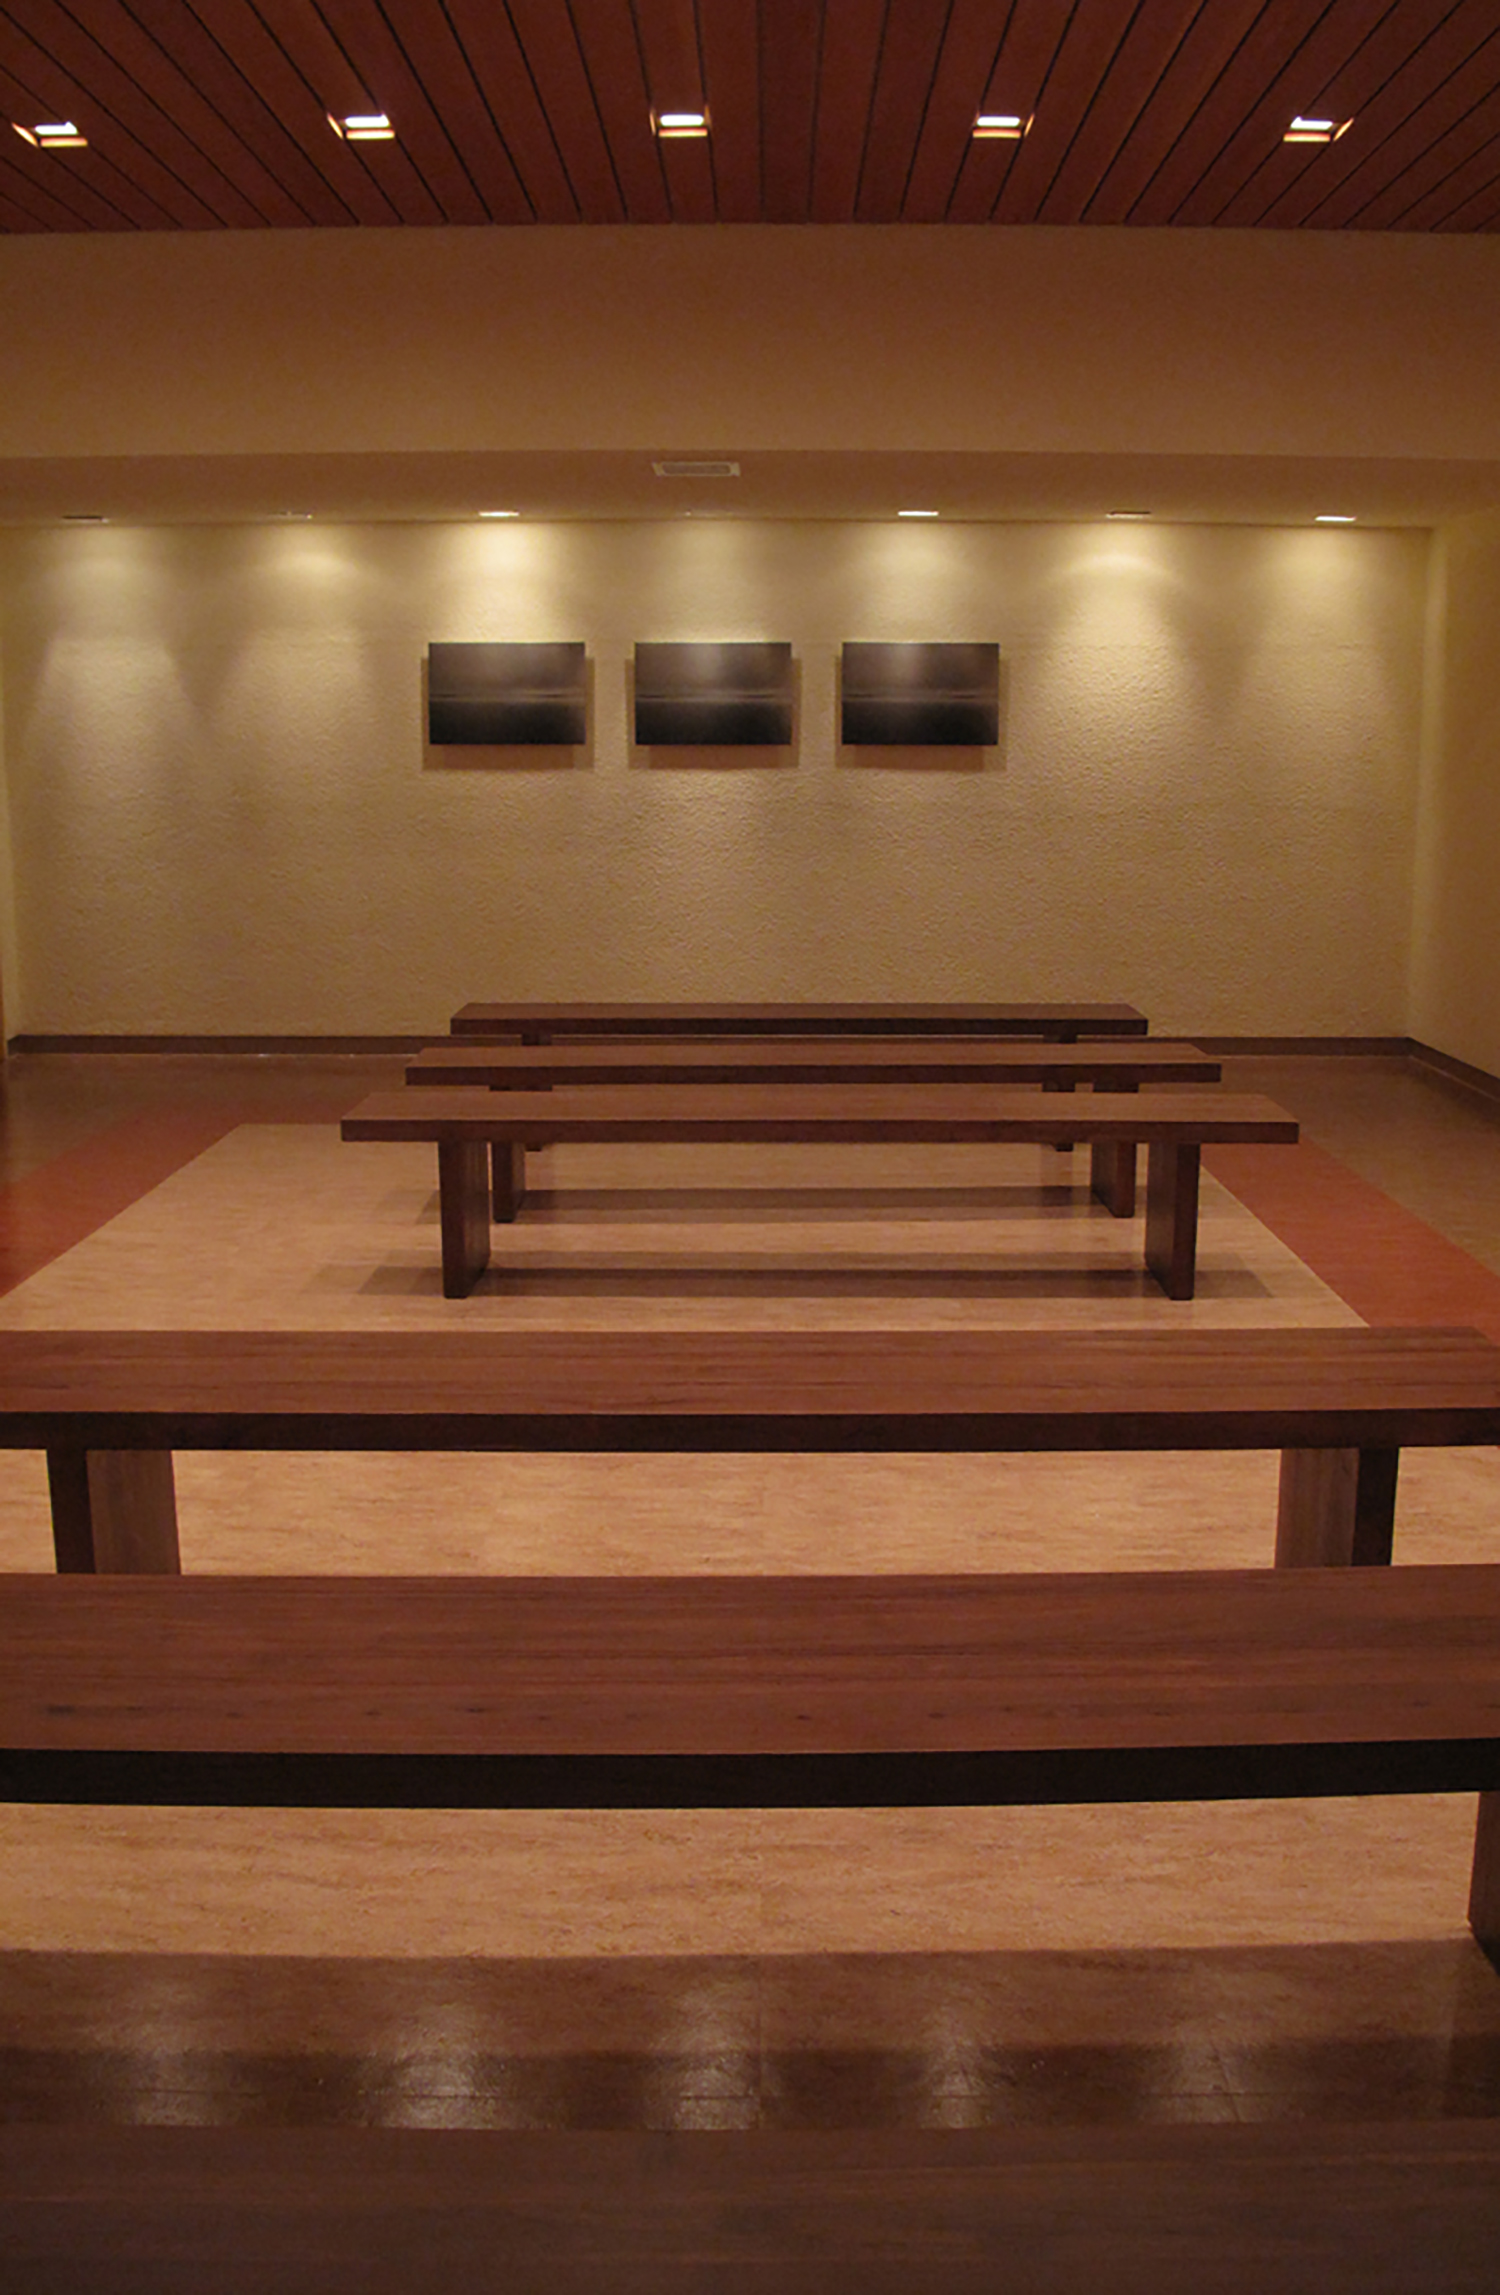 """QUIETNESS,"" NON-DENOMINATIONAL CHAPTER, SAN FRANCISCO GENERAL HOSPITAL, SAN FRANCISCO, CA 2010"